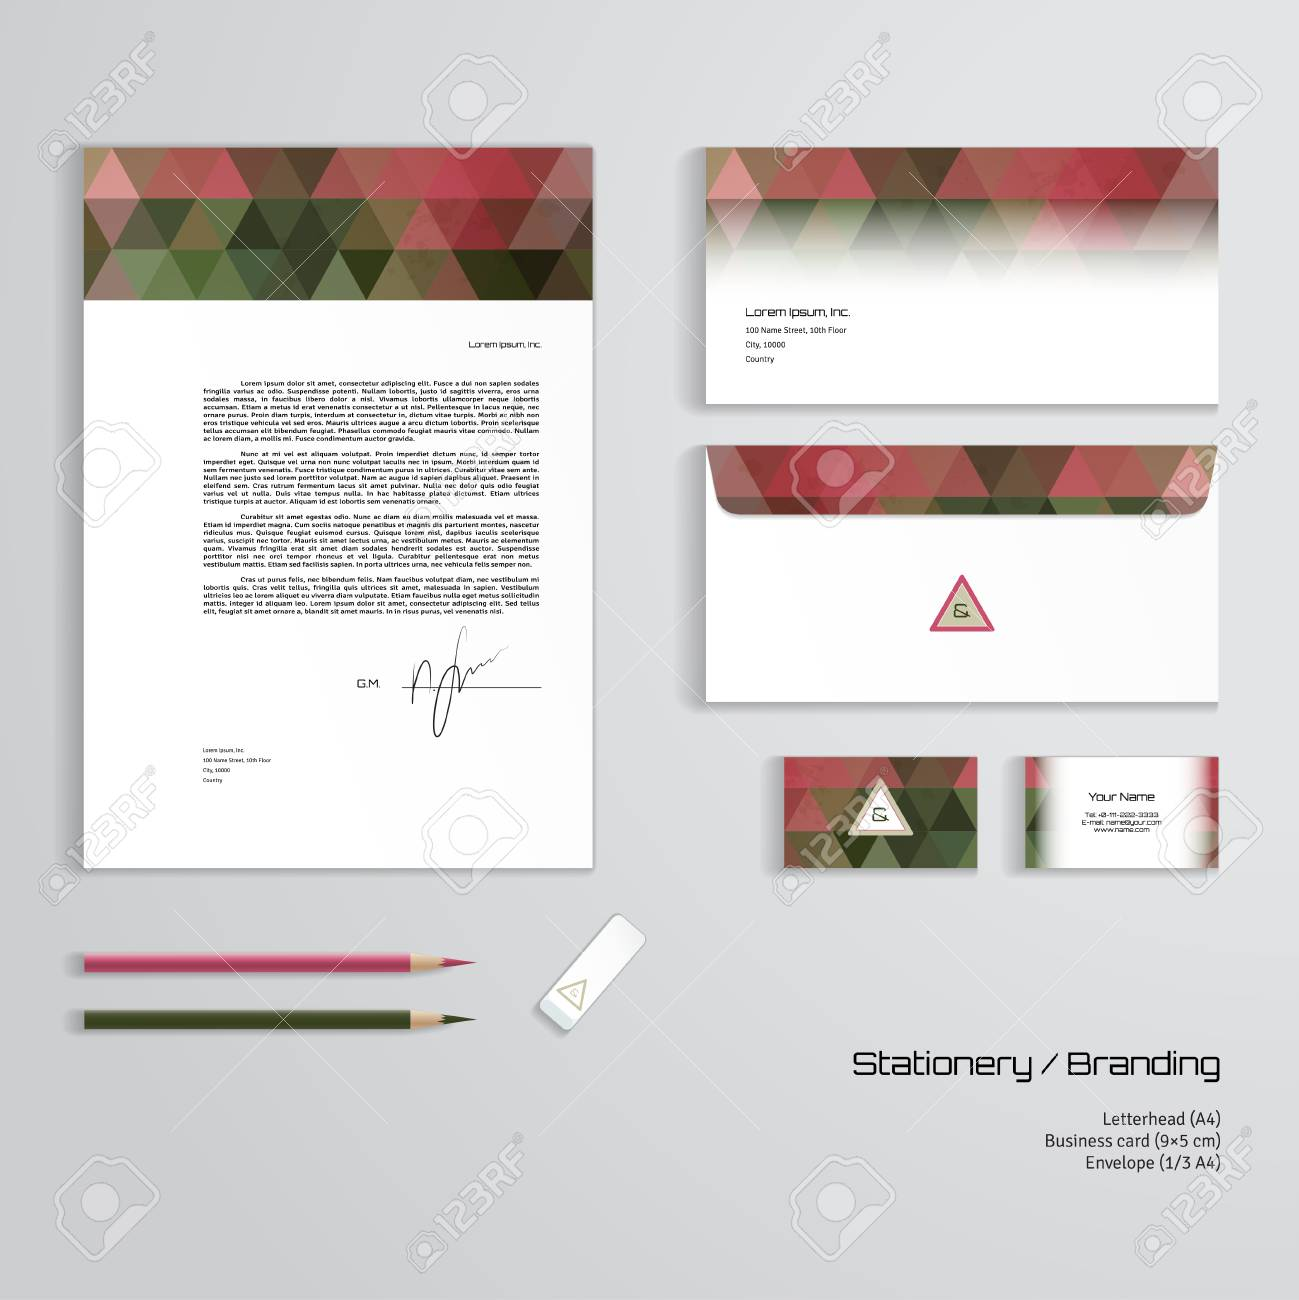 Vector corporate identity templates multicolored geometric pattern vector corporate identity templates multicolored geometric pattern letterhead envelope business card cheaphphosting Image collections